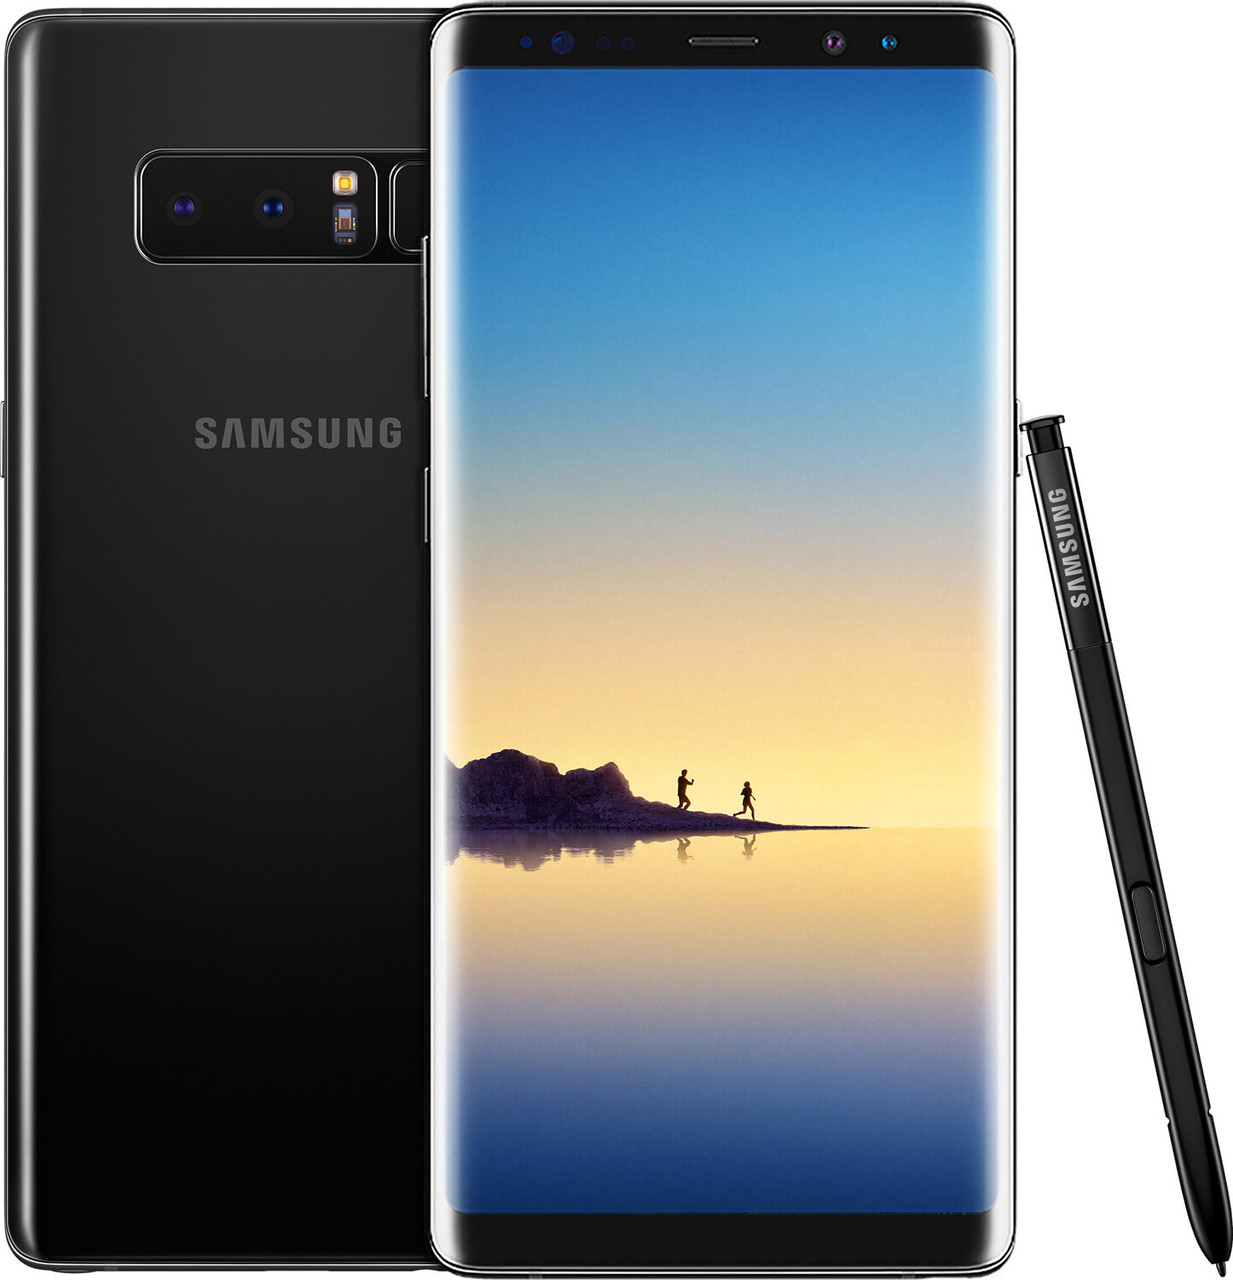 Смартфон Samsung Galaxy Note 8 6/64Gb Black (SM-N950U) 1sim USA Snapdragon